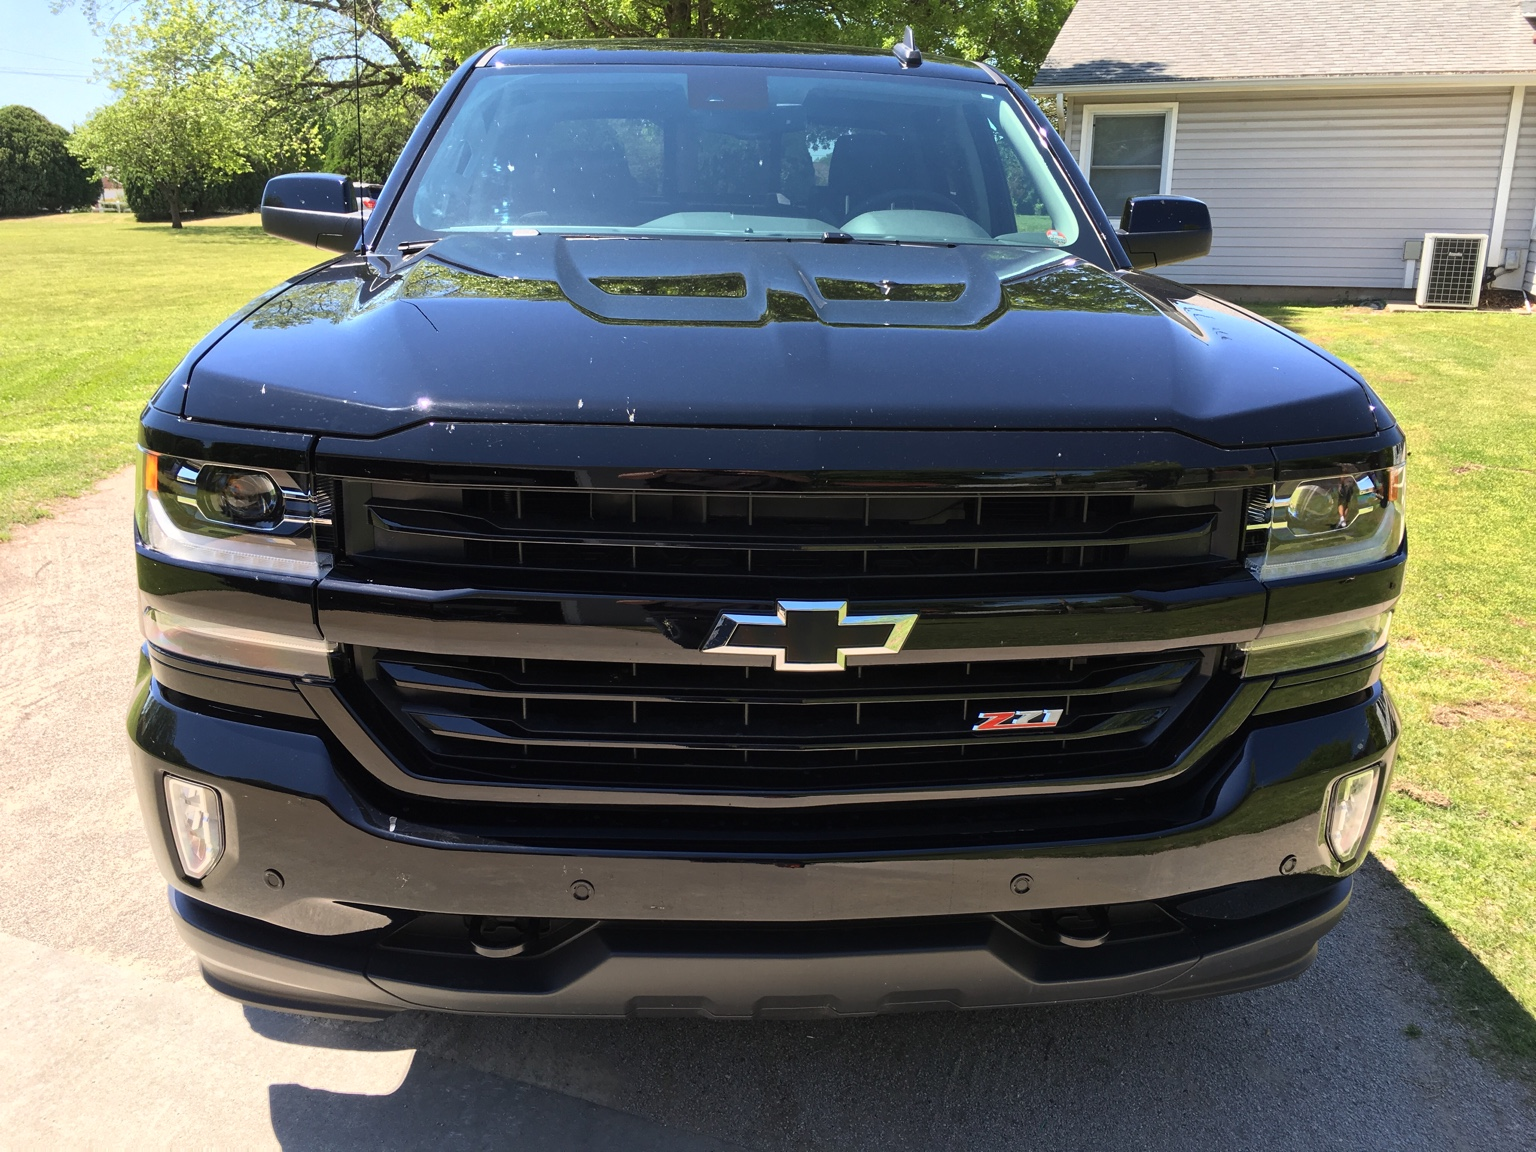 b1gted 39 s 2016 z71 ltz 4x4 midnight edition silverado vehicle builds gm. Black Bedroom Furniture Sets. Home Design Ideas